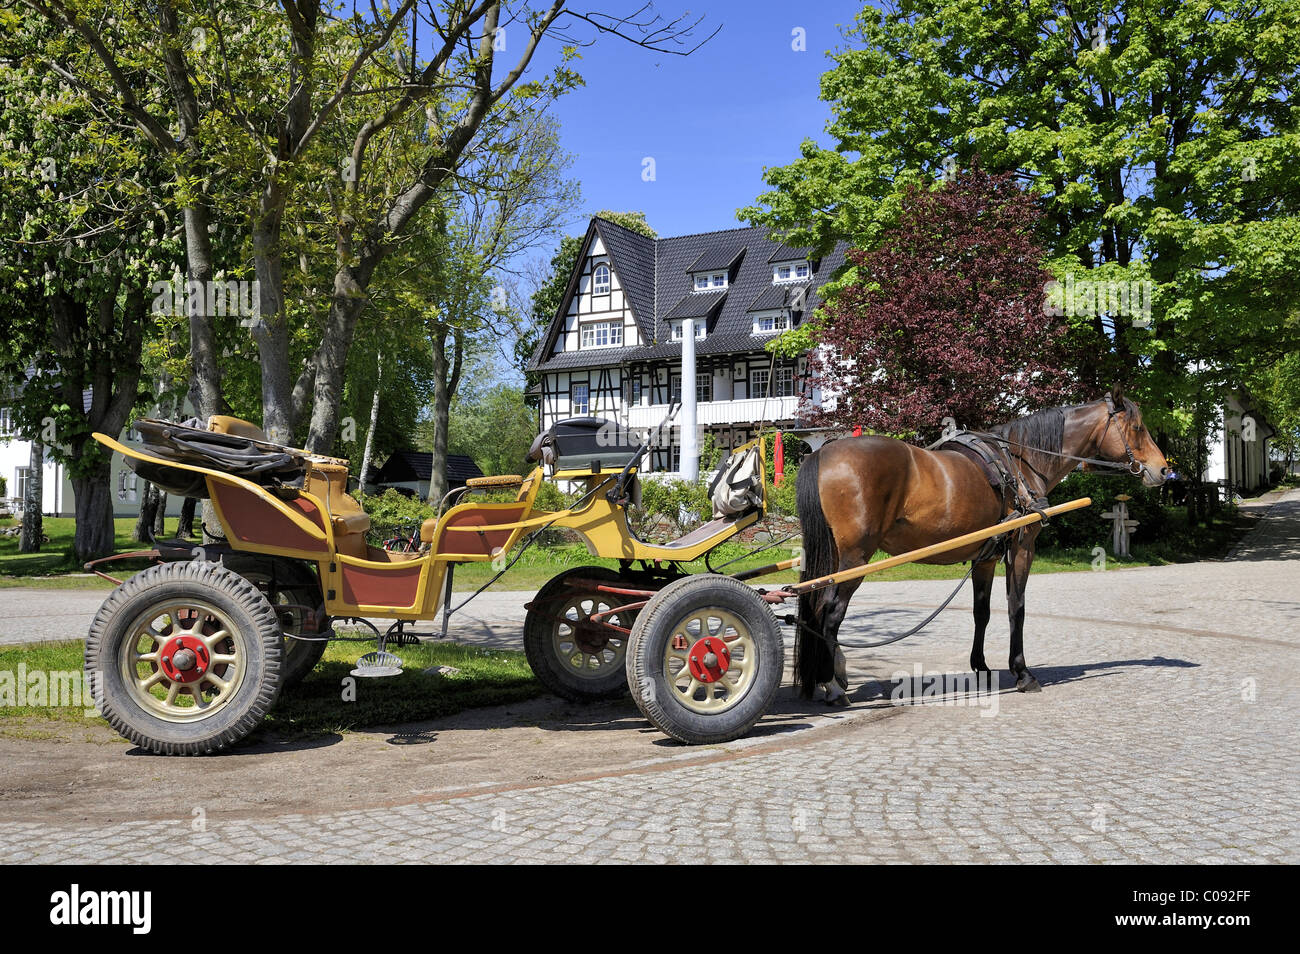 Horse-drawn carriage, public transport on the car-free island, Hiddensee Island, district of Ruegen - Stock Image